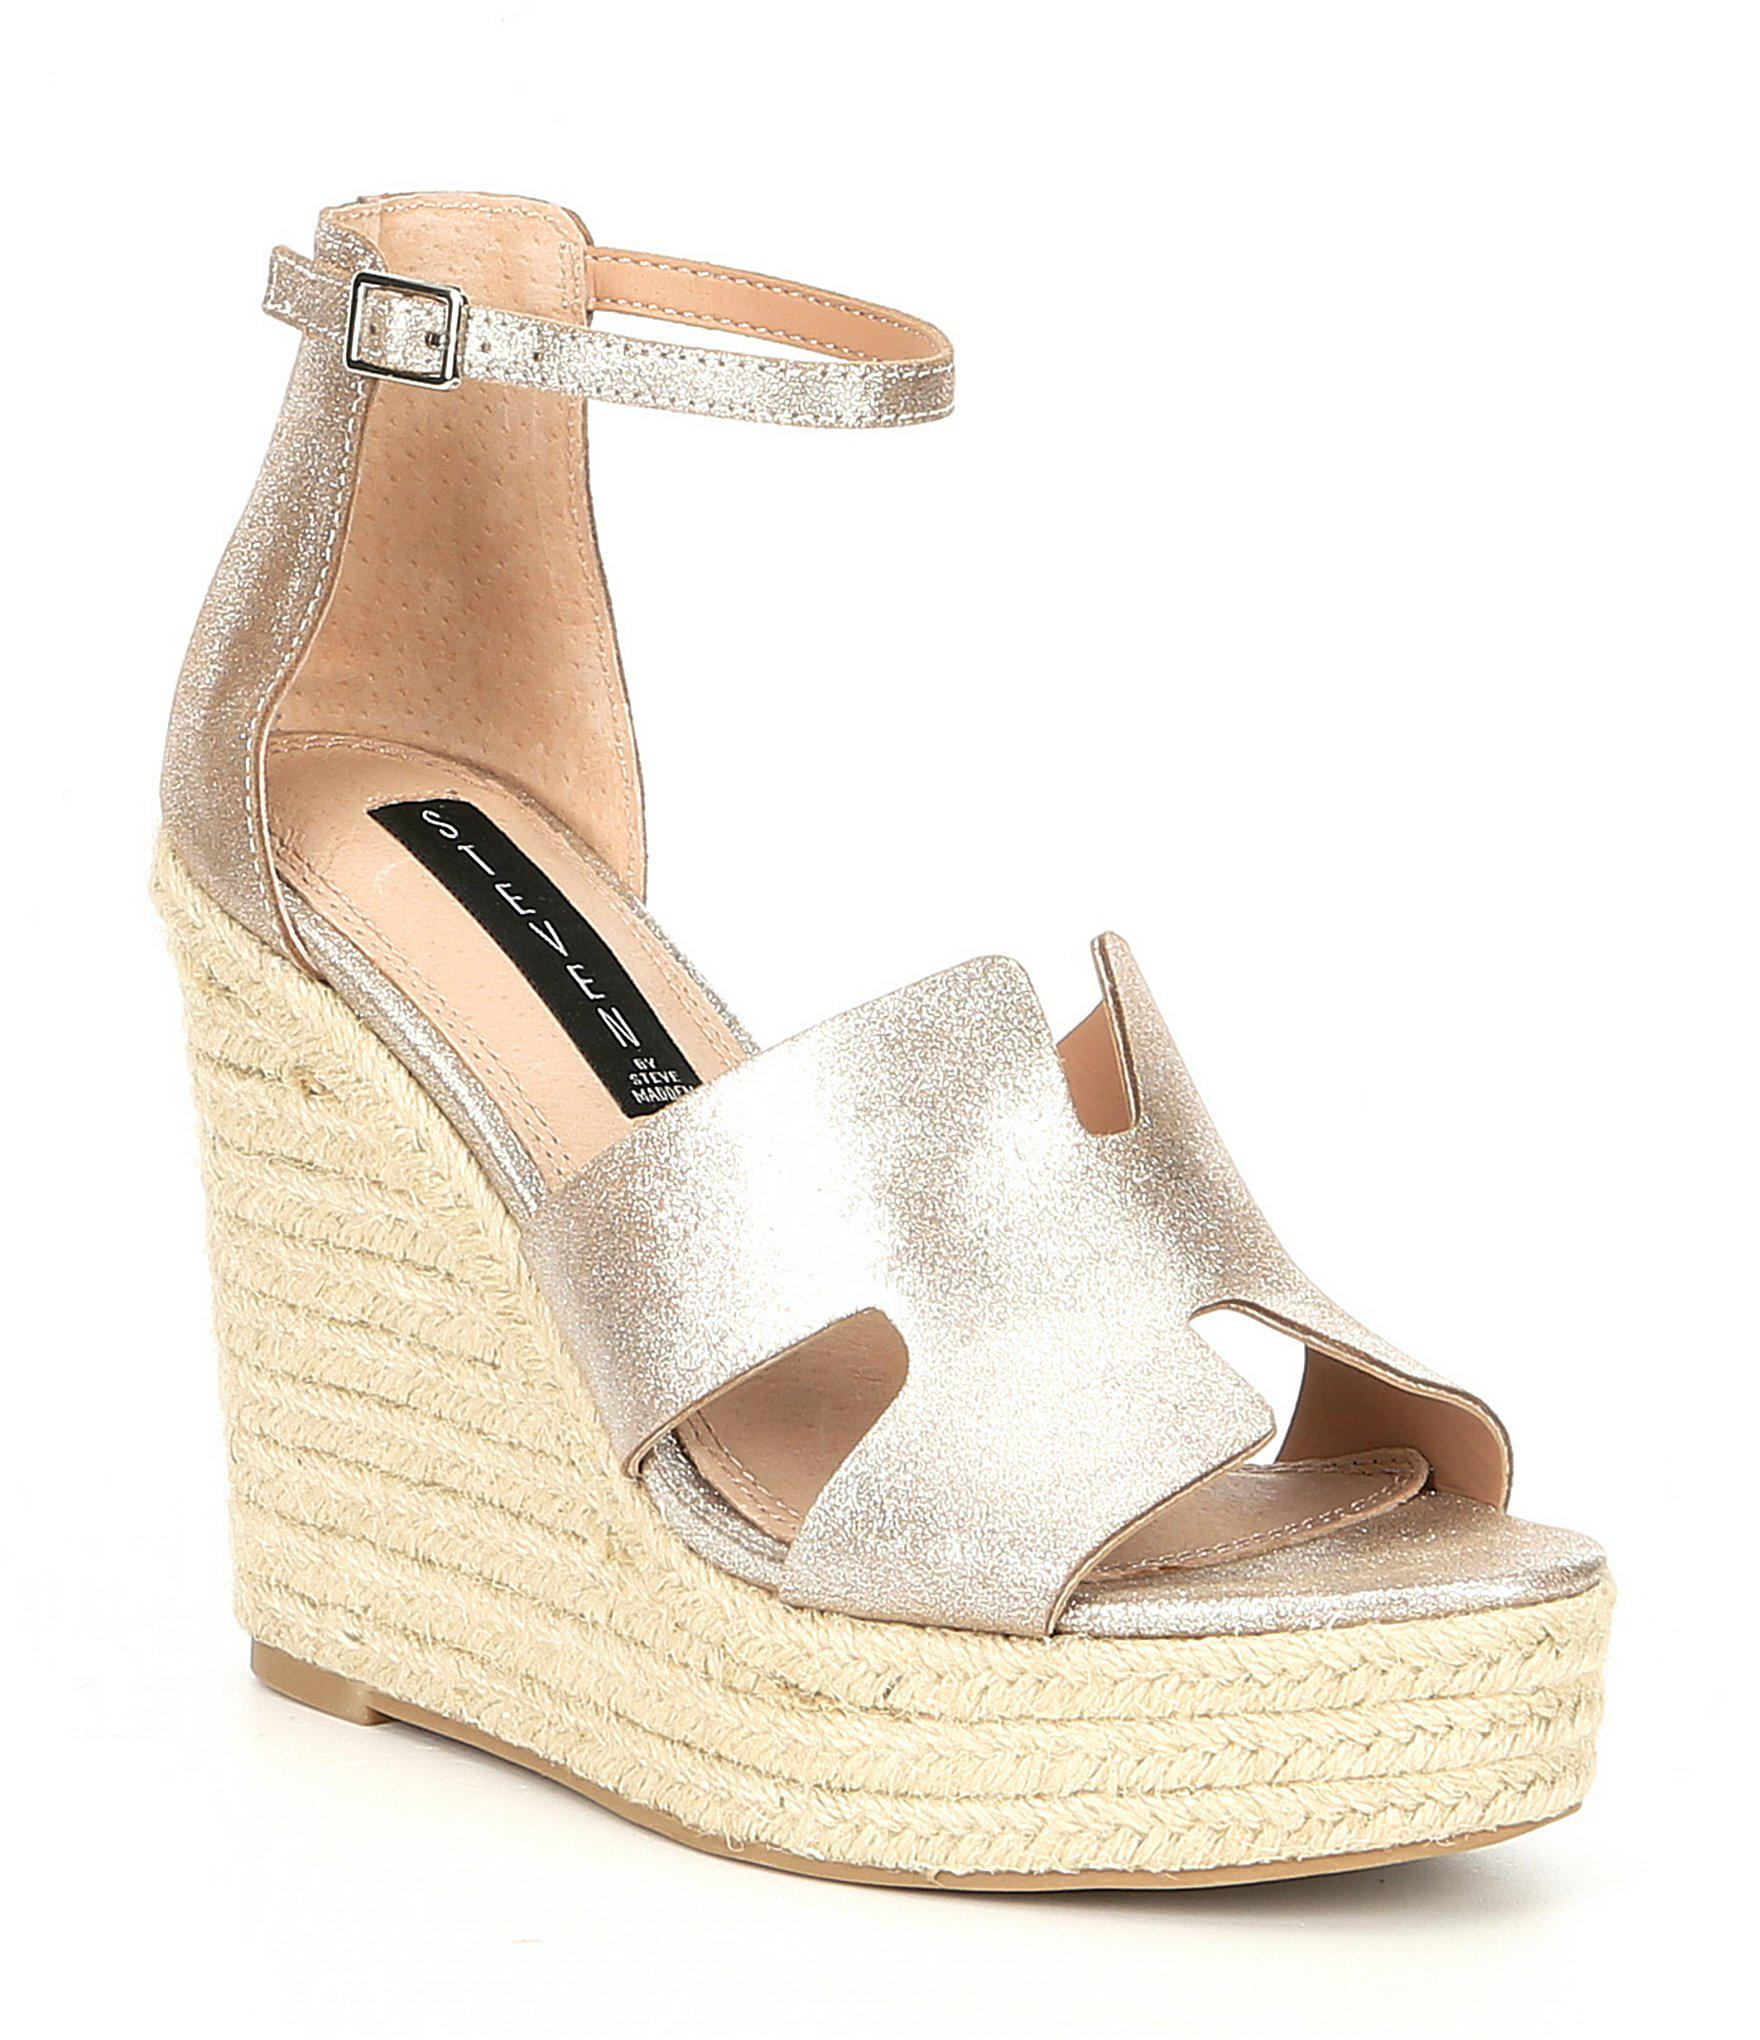 5538b2aaec Steve Madden Steven By Sirena Leather Espadrille Wedge Sandals in ...